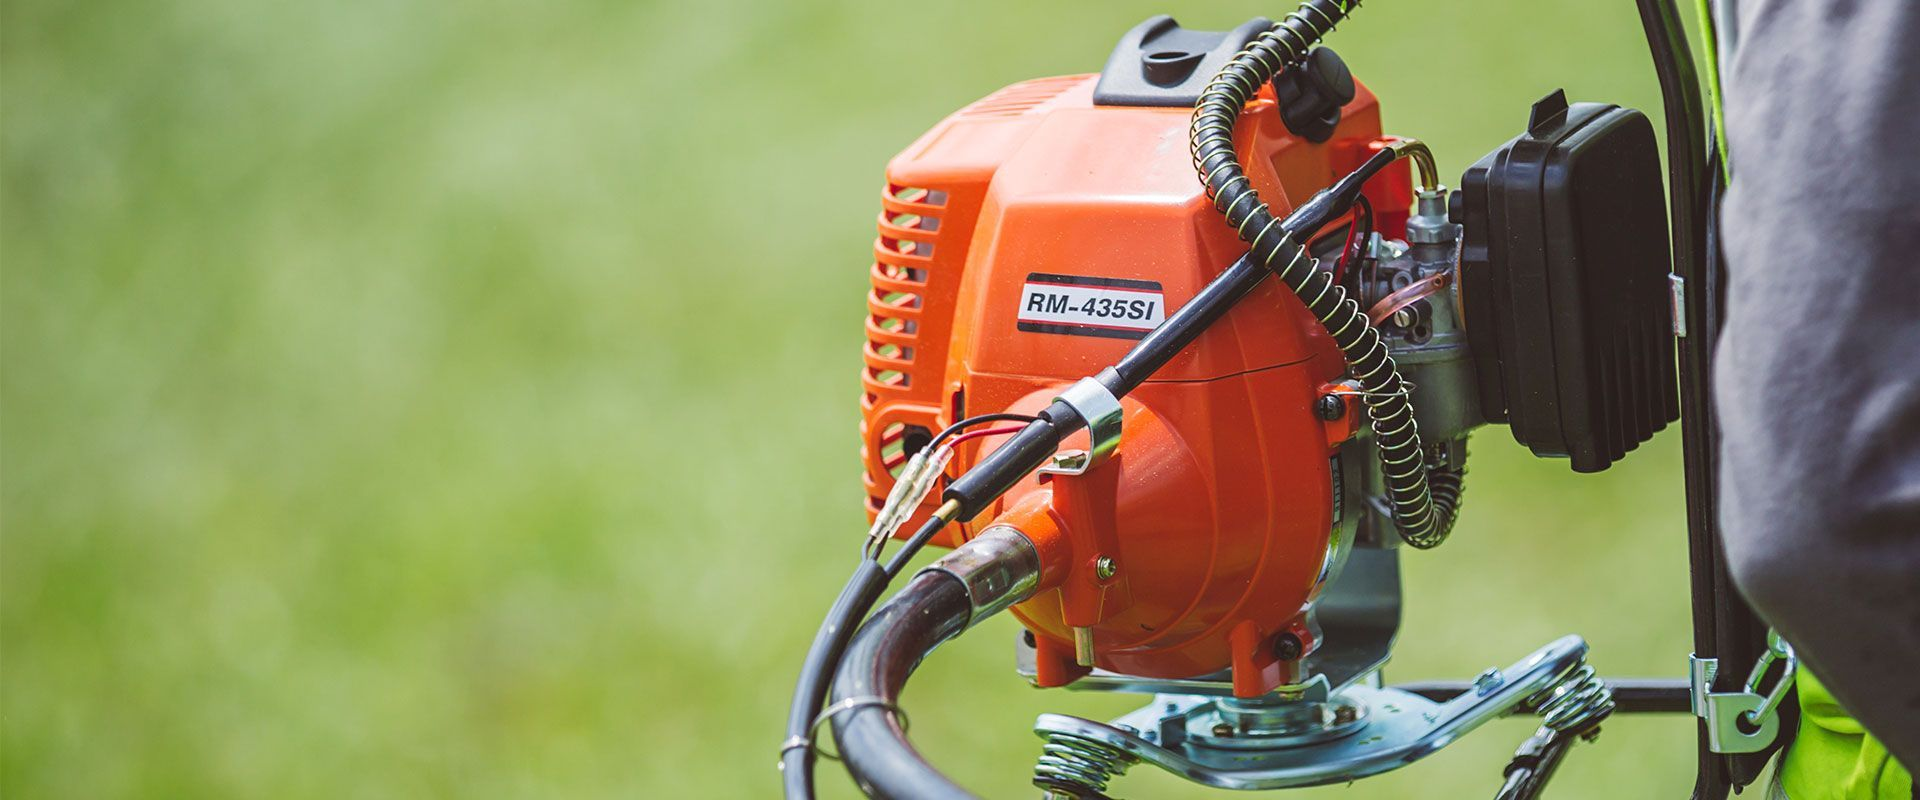 Backpack Brushcutters